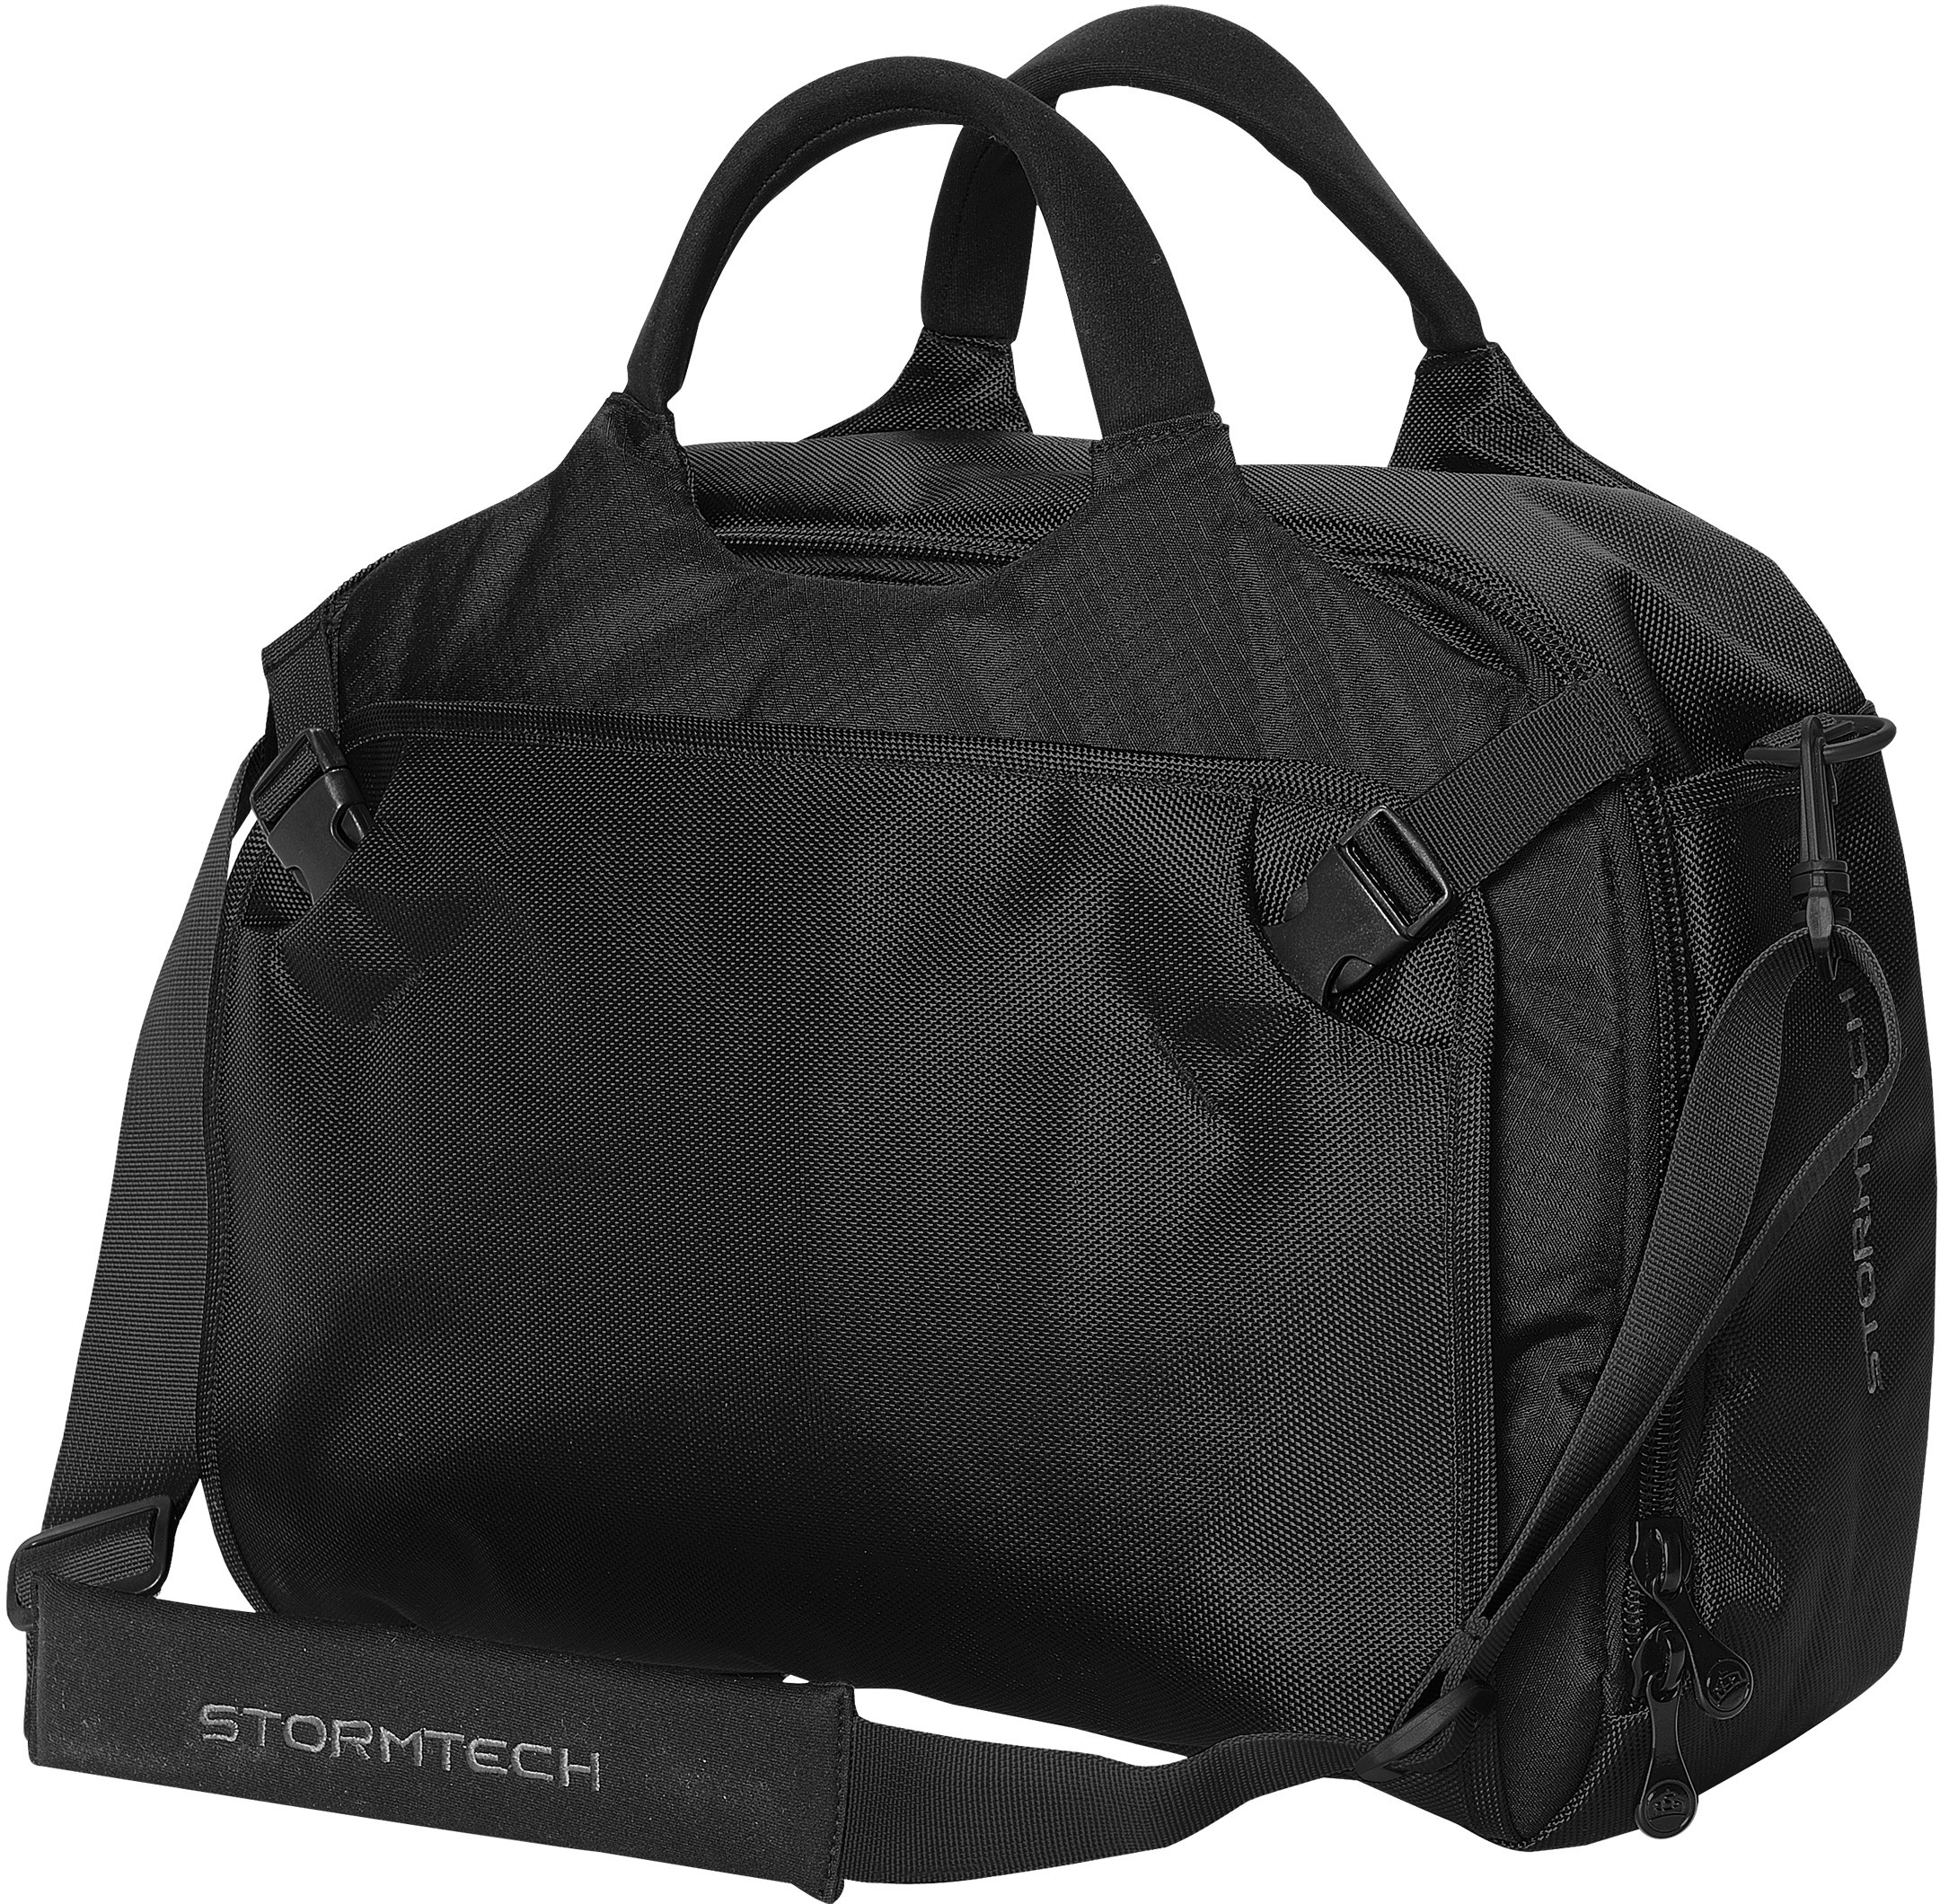 "Stormtech LOGIC 15"" PACK LAPTOP CASE"